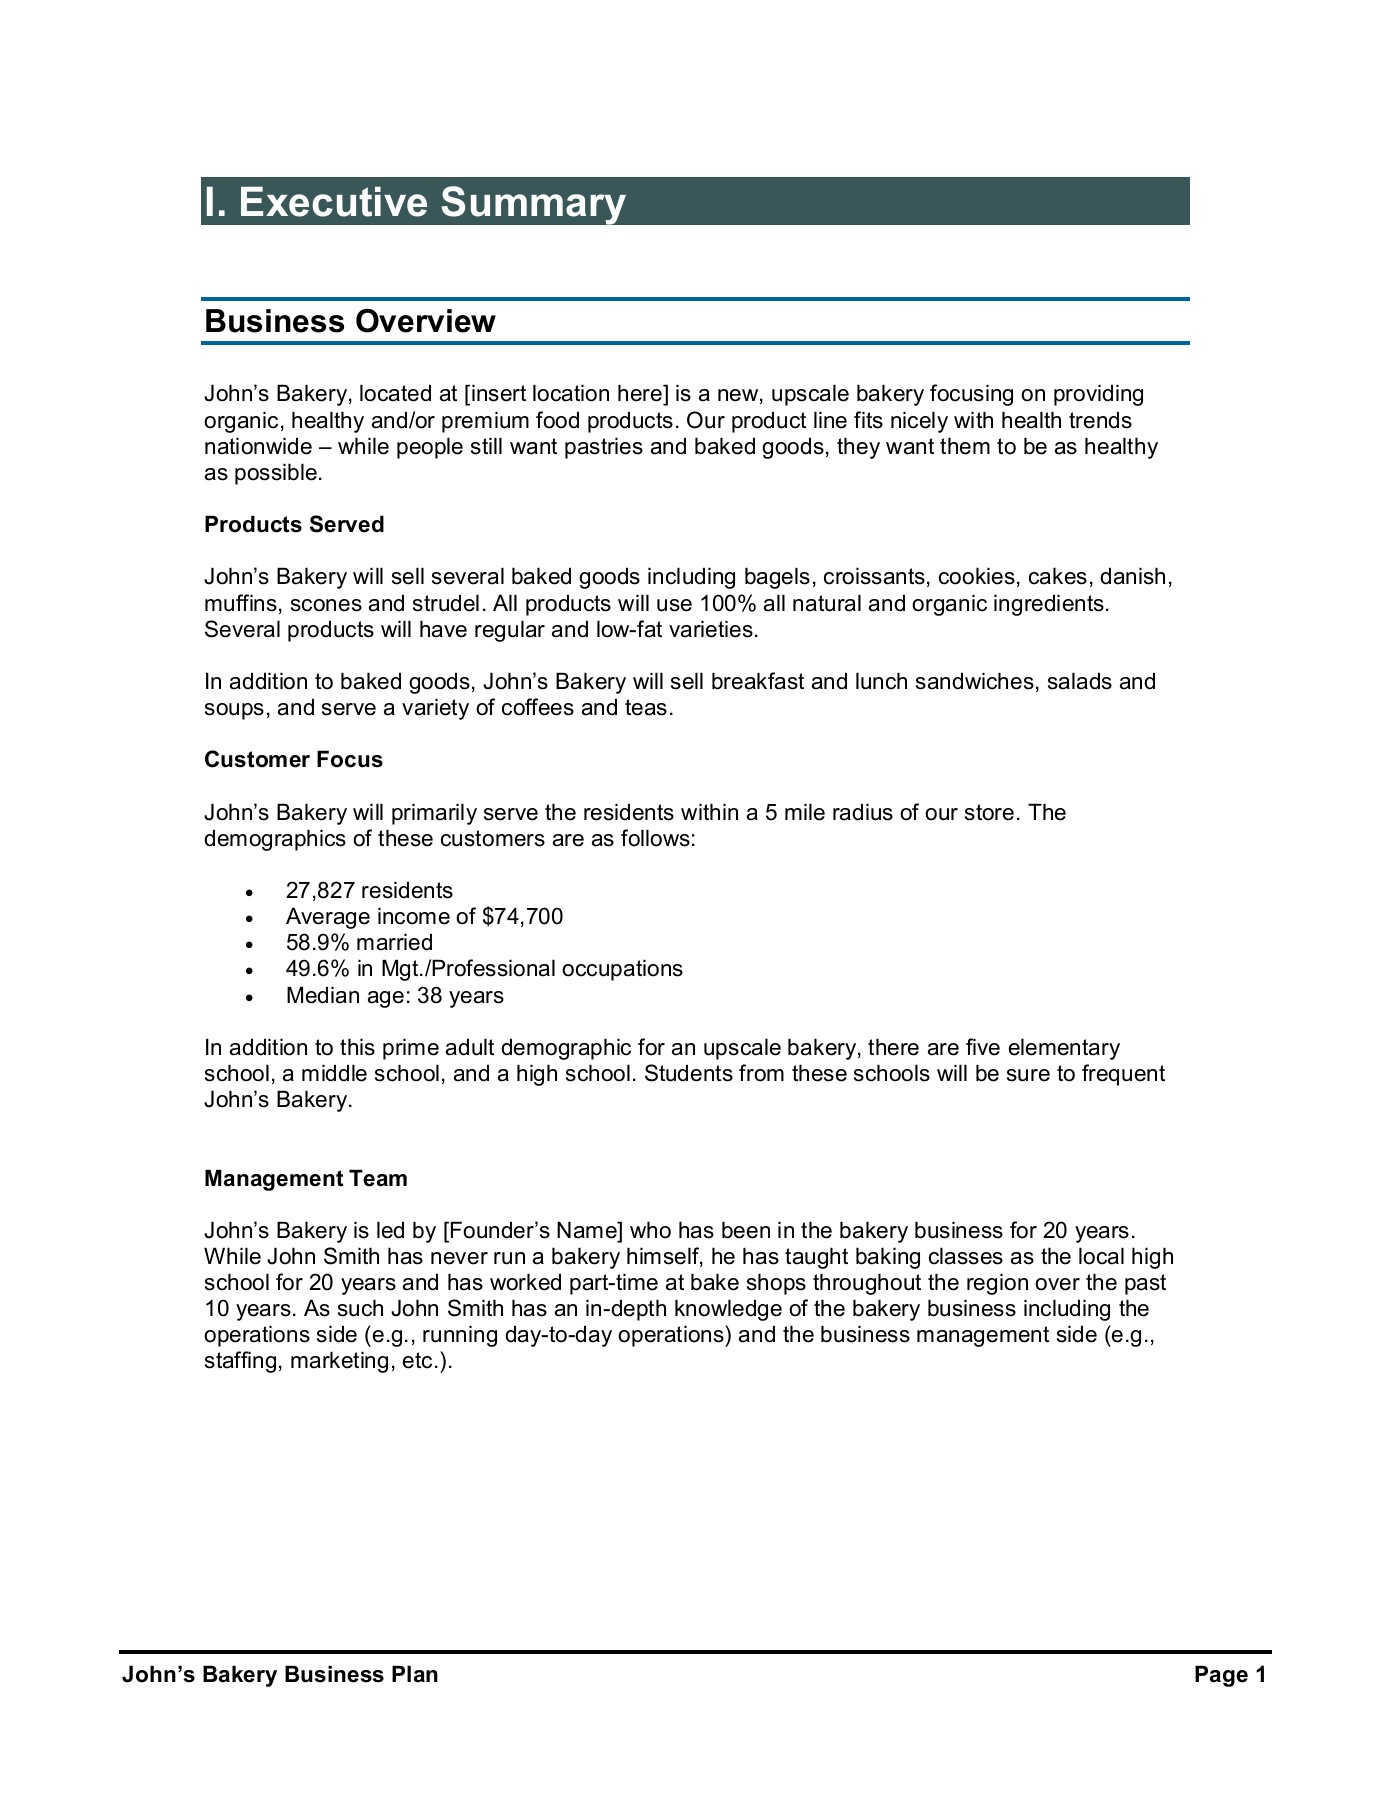 Sample Bakery Business Plan Pages 1 29 Text Version Anyflip